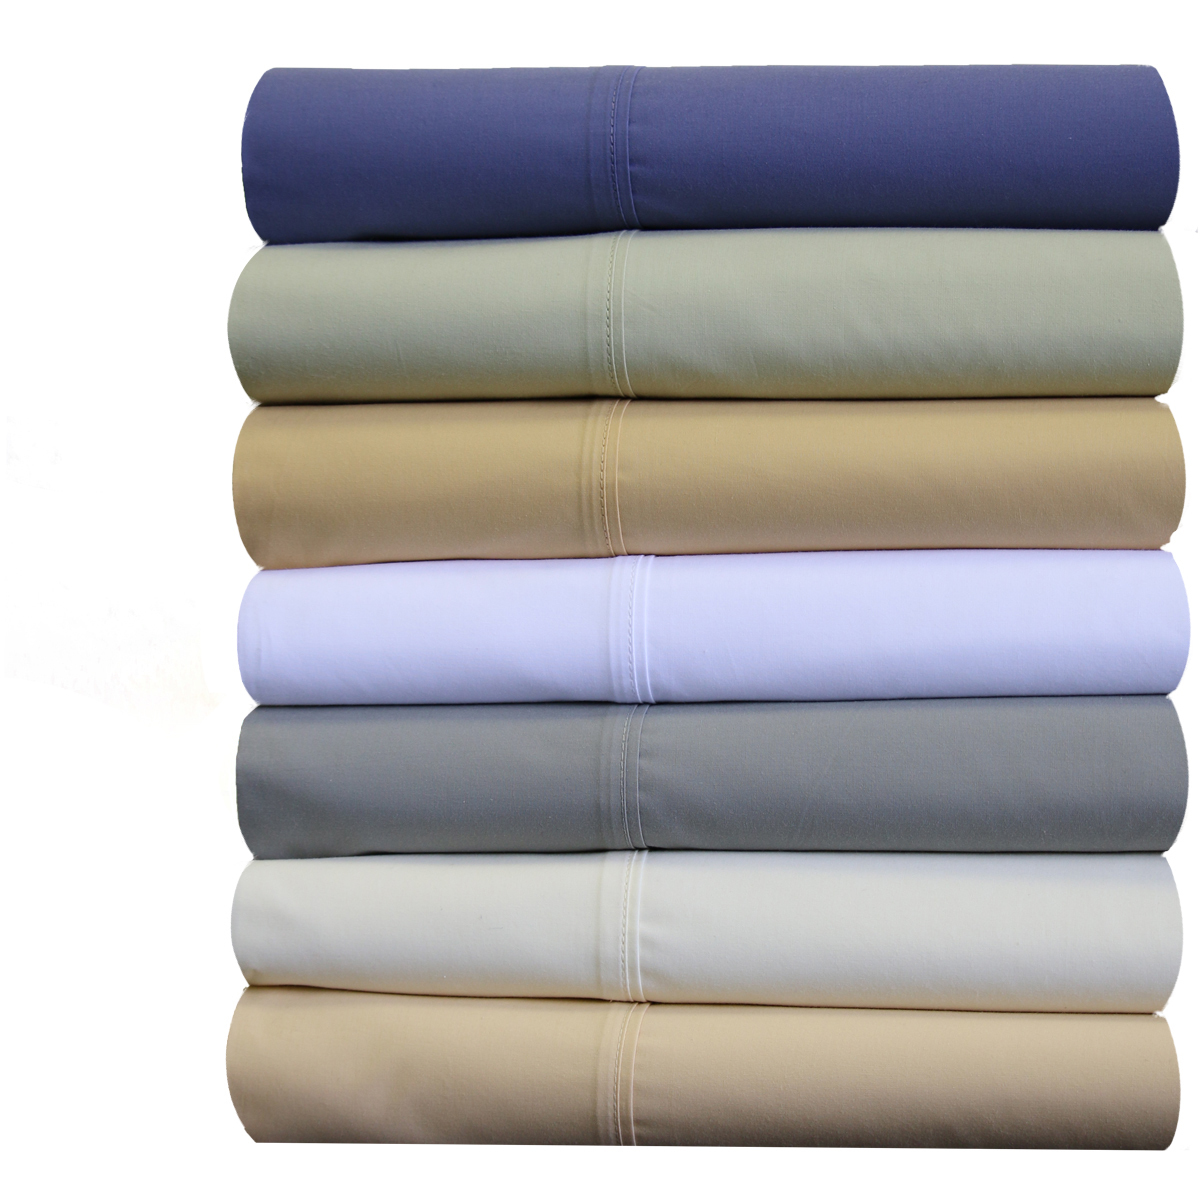 Abripedic Cotton Percale Extra Deep pocket Sheets Breathable Crispy Soft 22 inch Fitted Sheet Sets